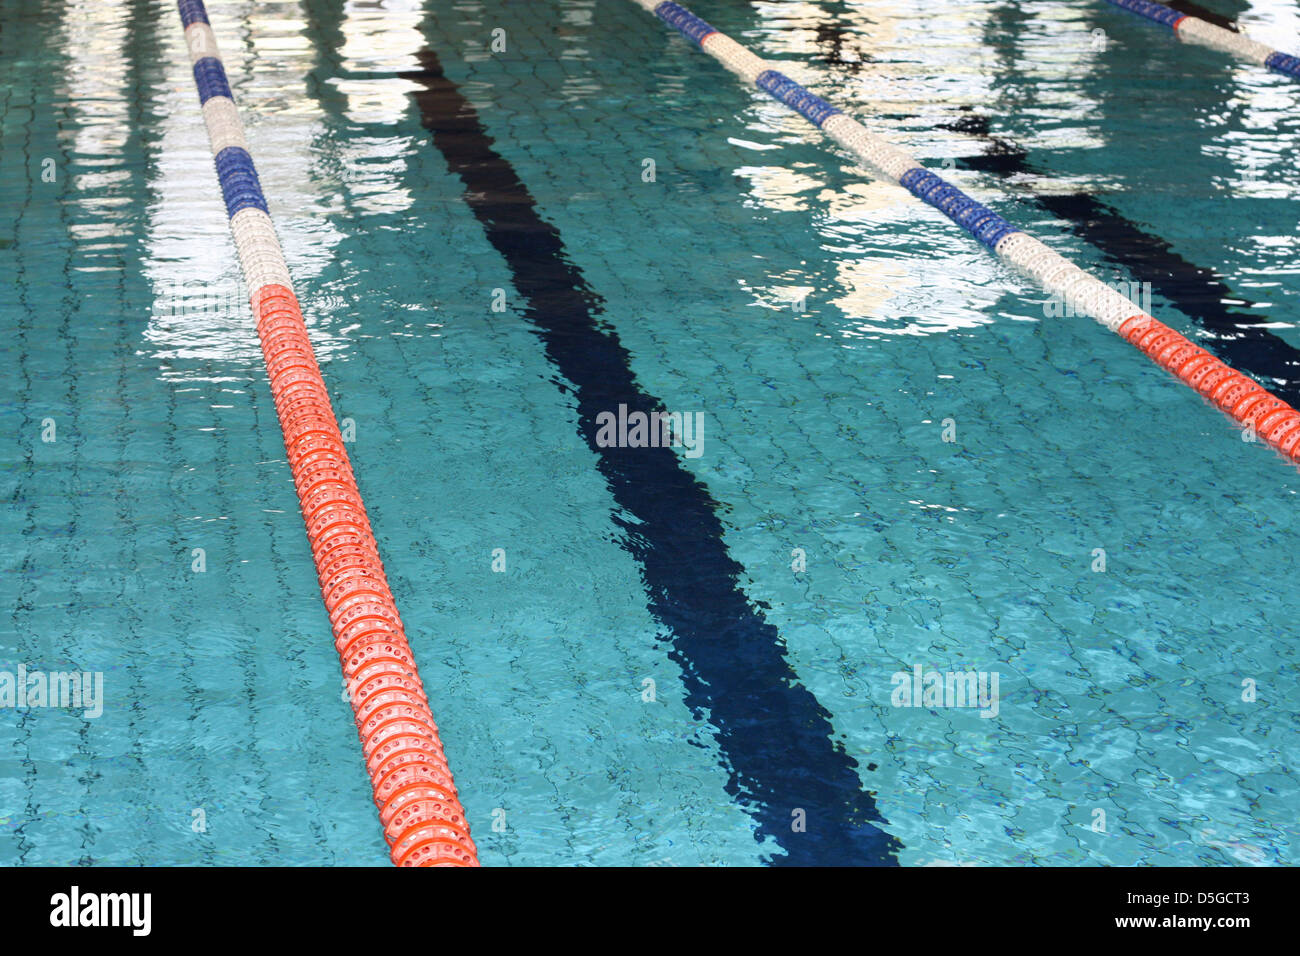 Olympic Diving Pool Stock Photos Olympic Diving Pool Stock Images Alamy